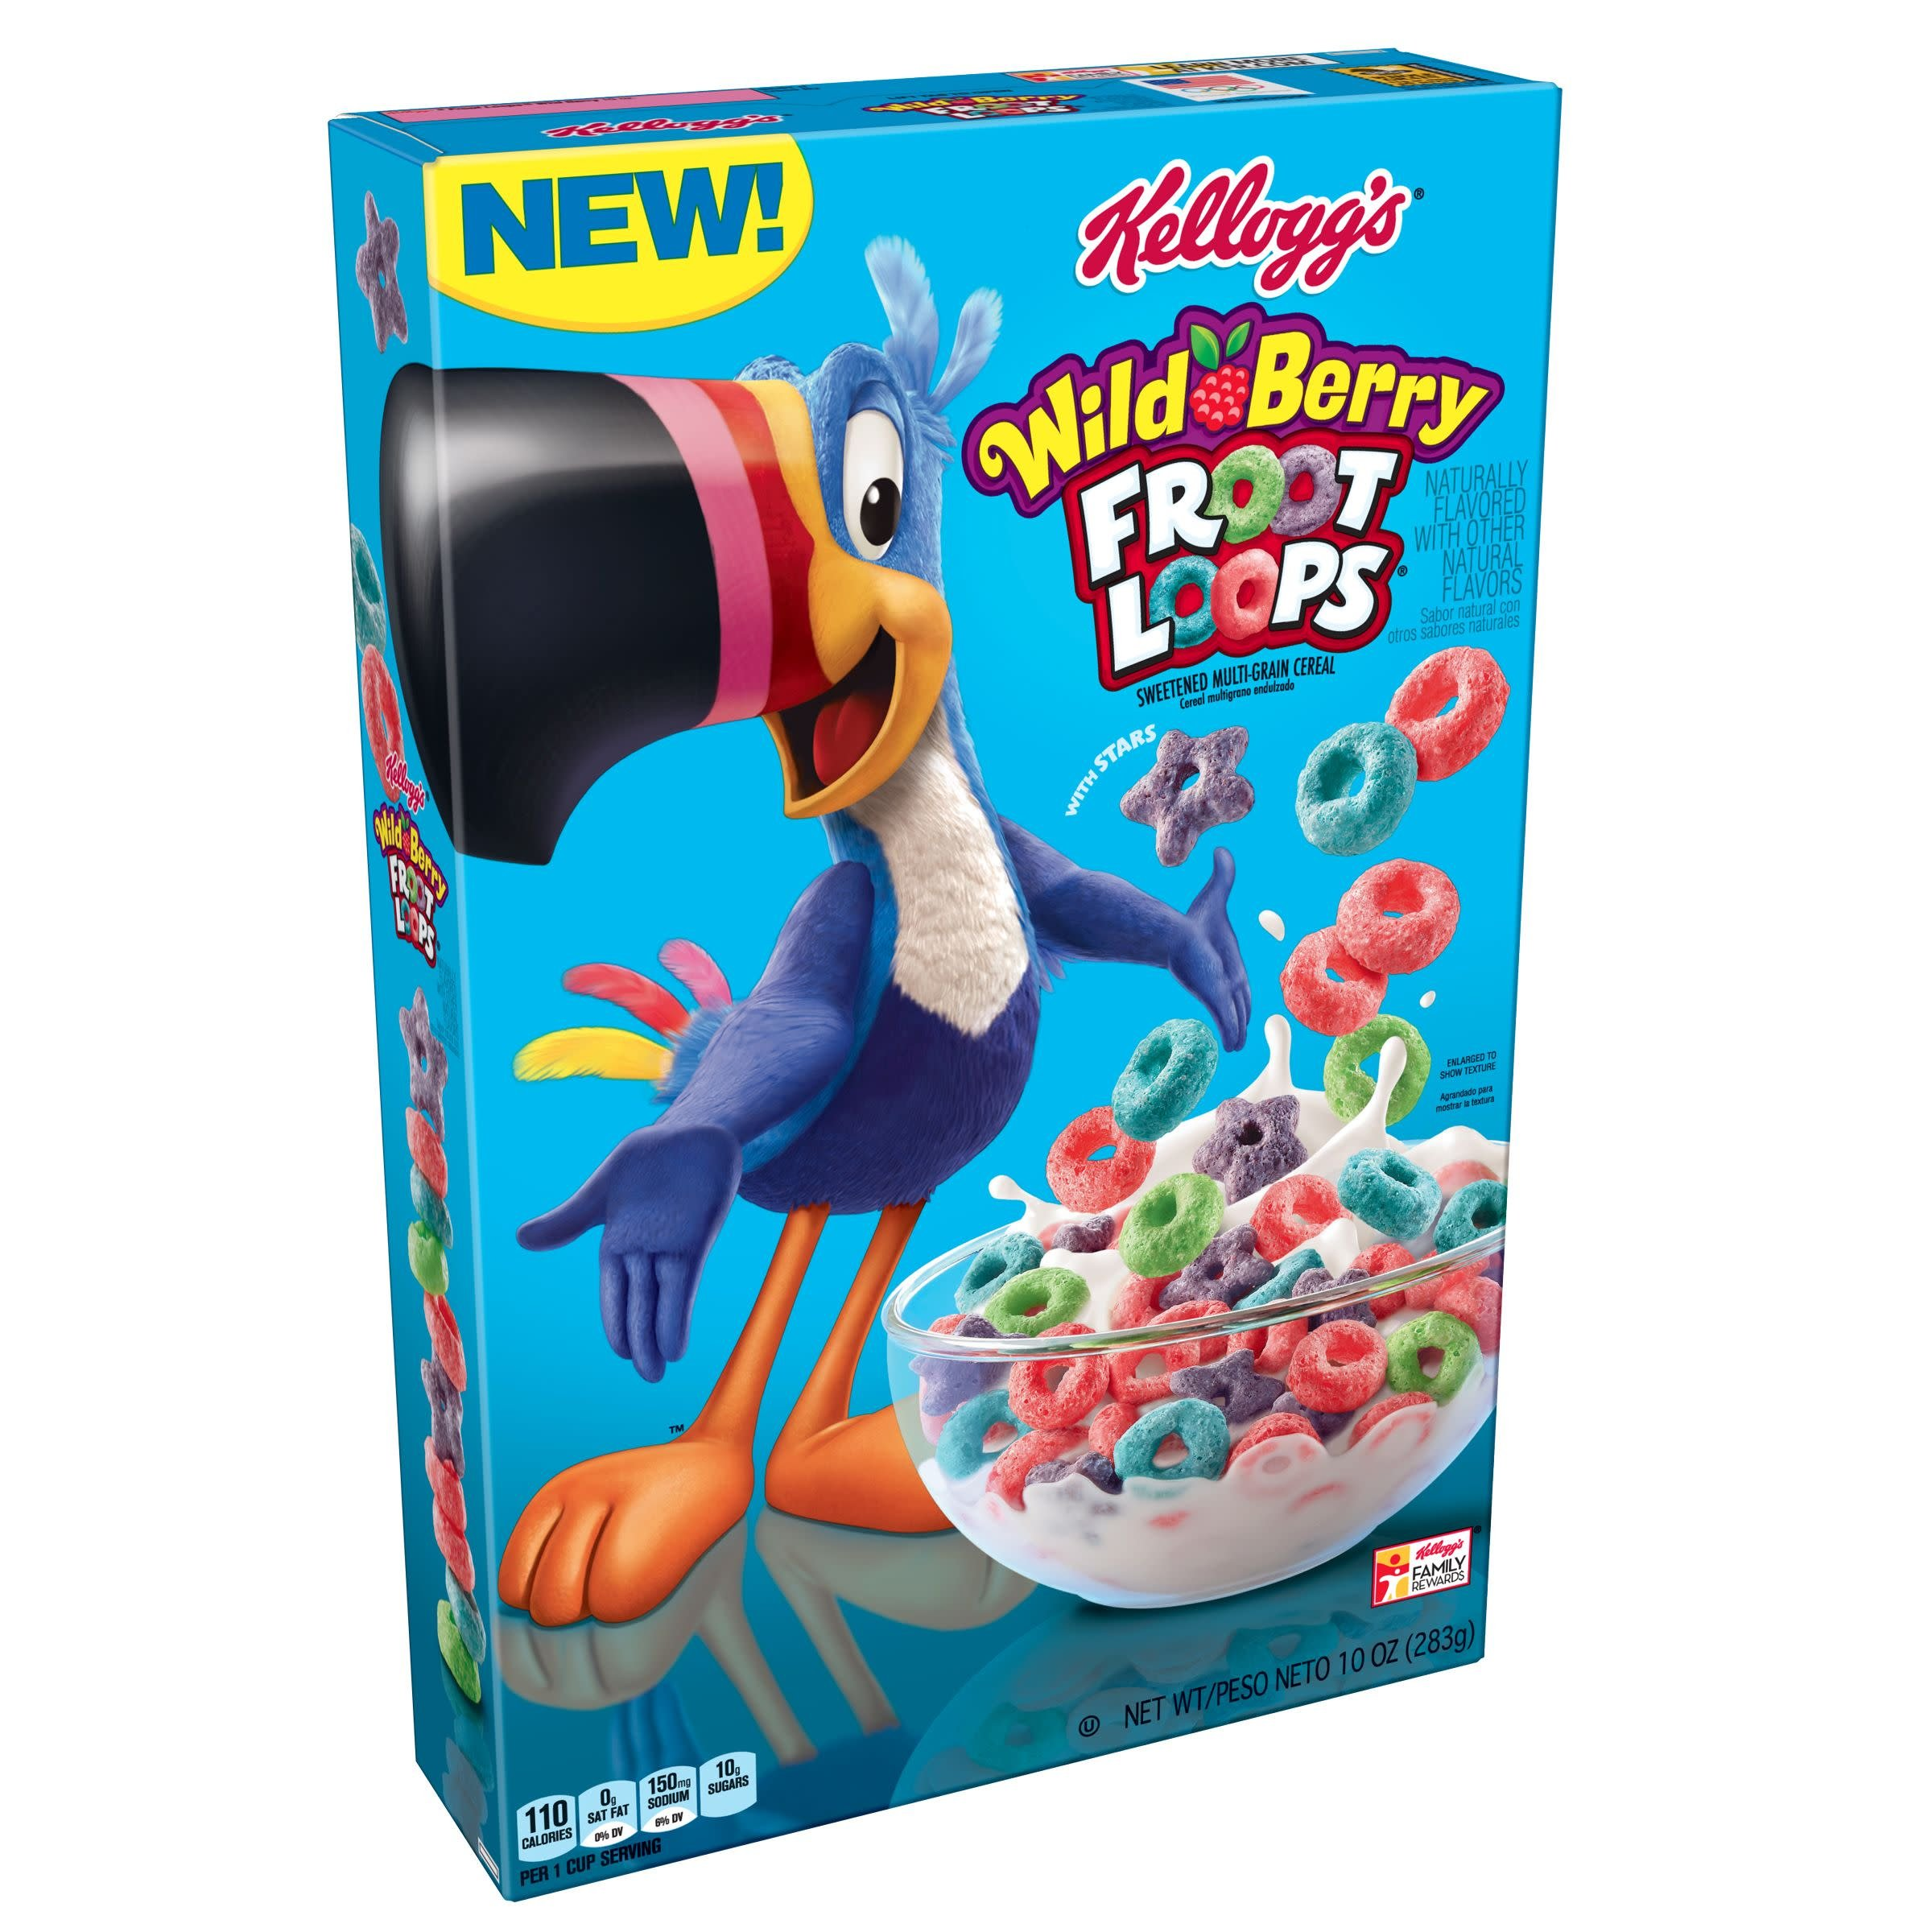 Kellogg's Froot Loops, Breakfast Cereal, Wild Berry, 10 oz Box(Pack of 12)